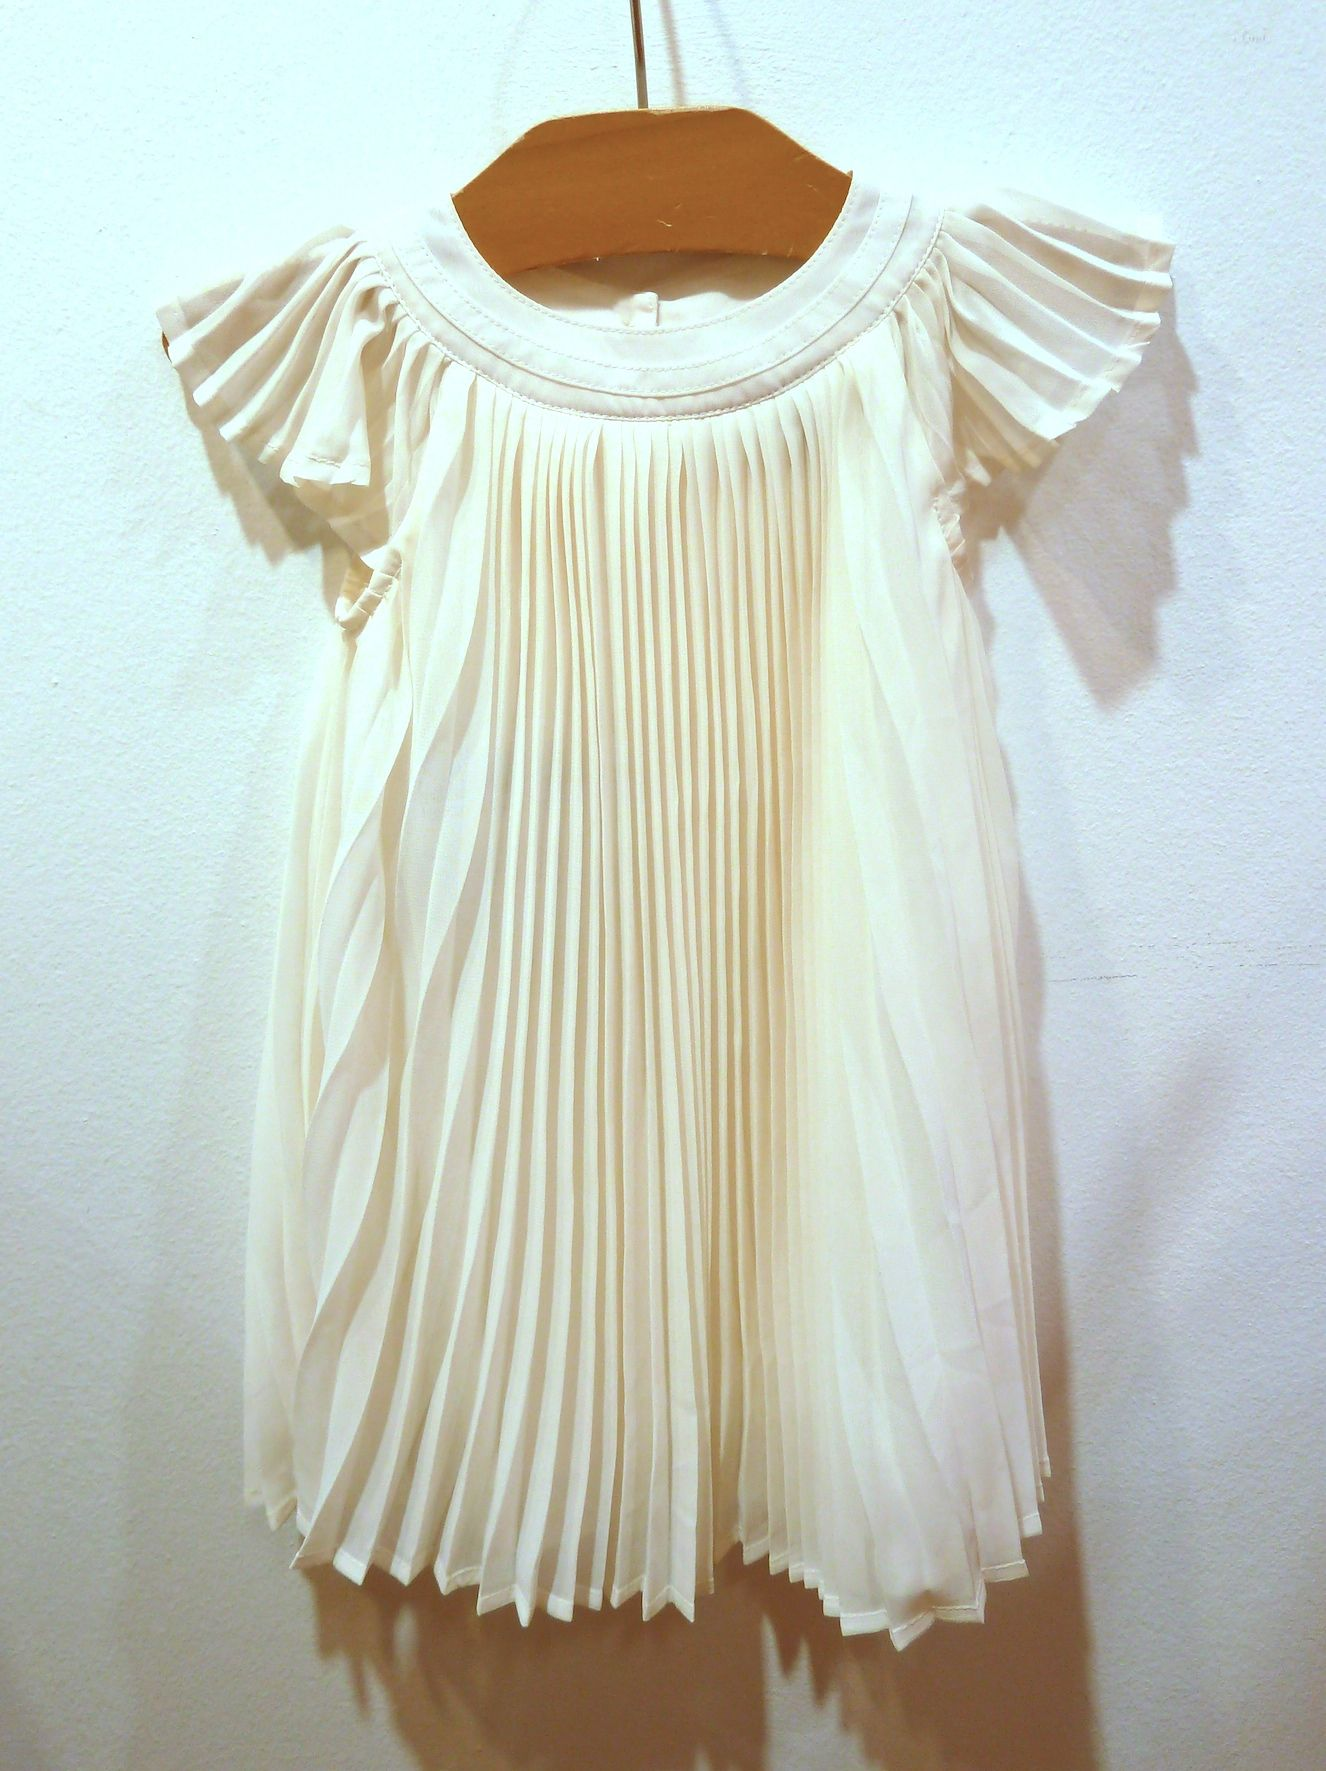 Toddler sized fan pleated silky dress for spring 2012 at Gapkids